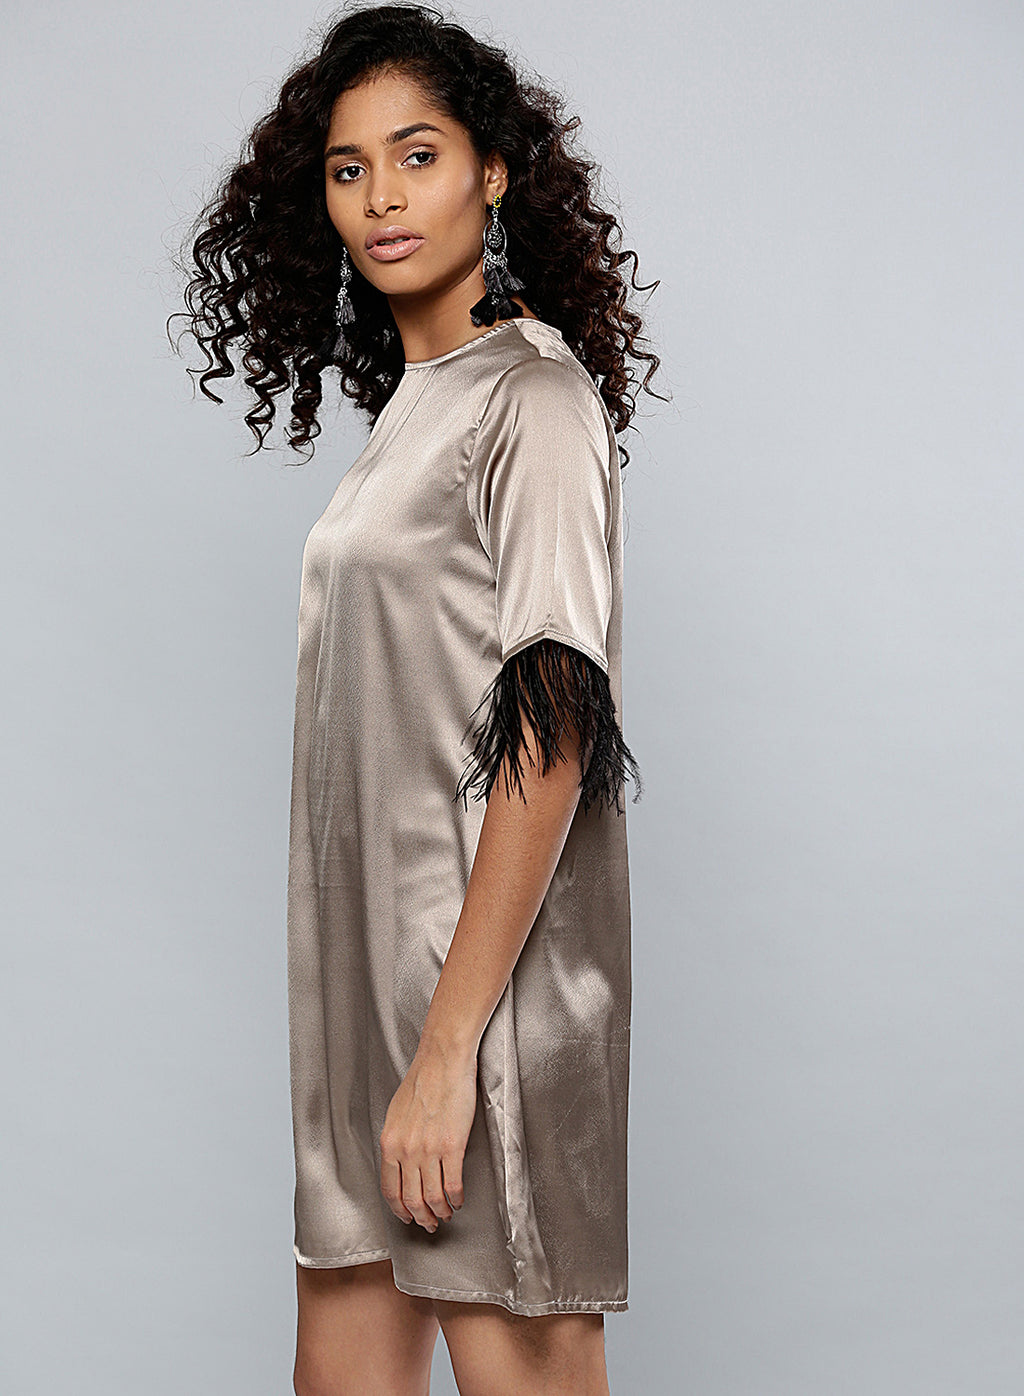 Great Gatsby Inspired Dresses With Sleeves